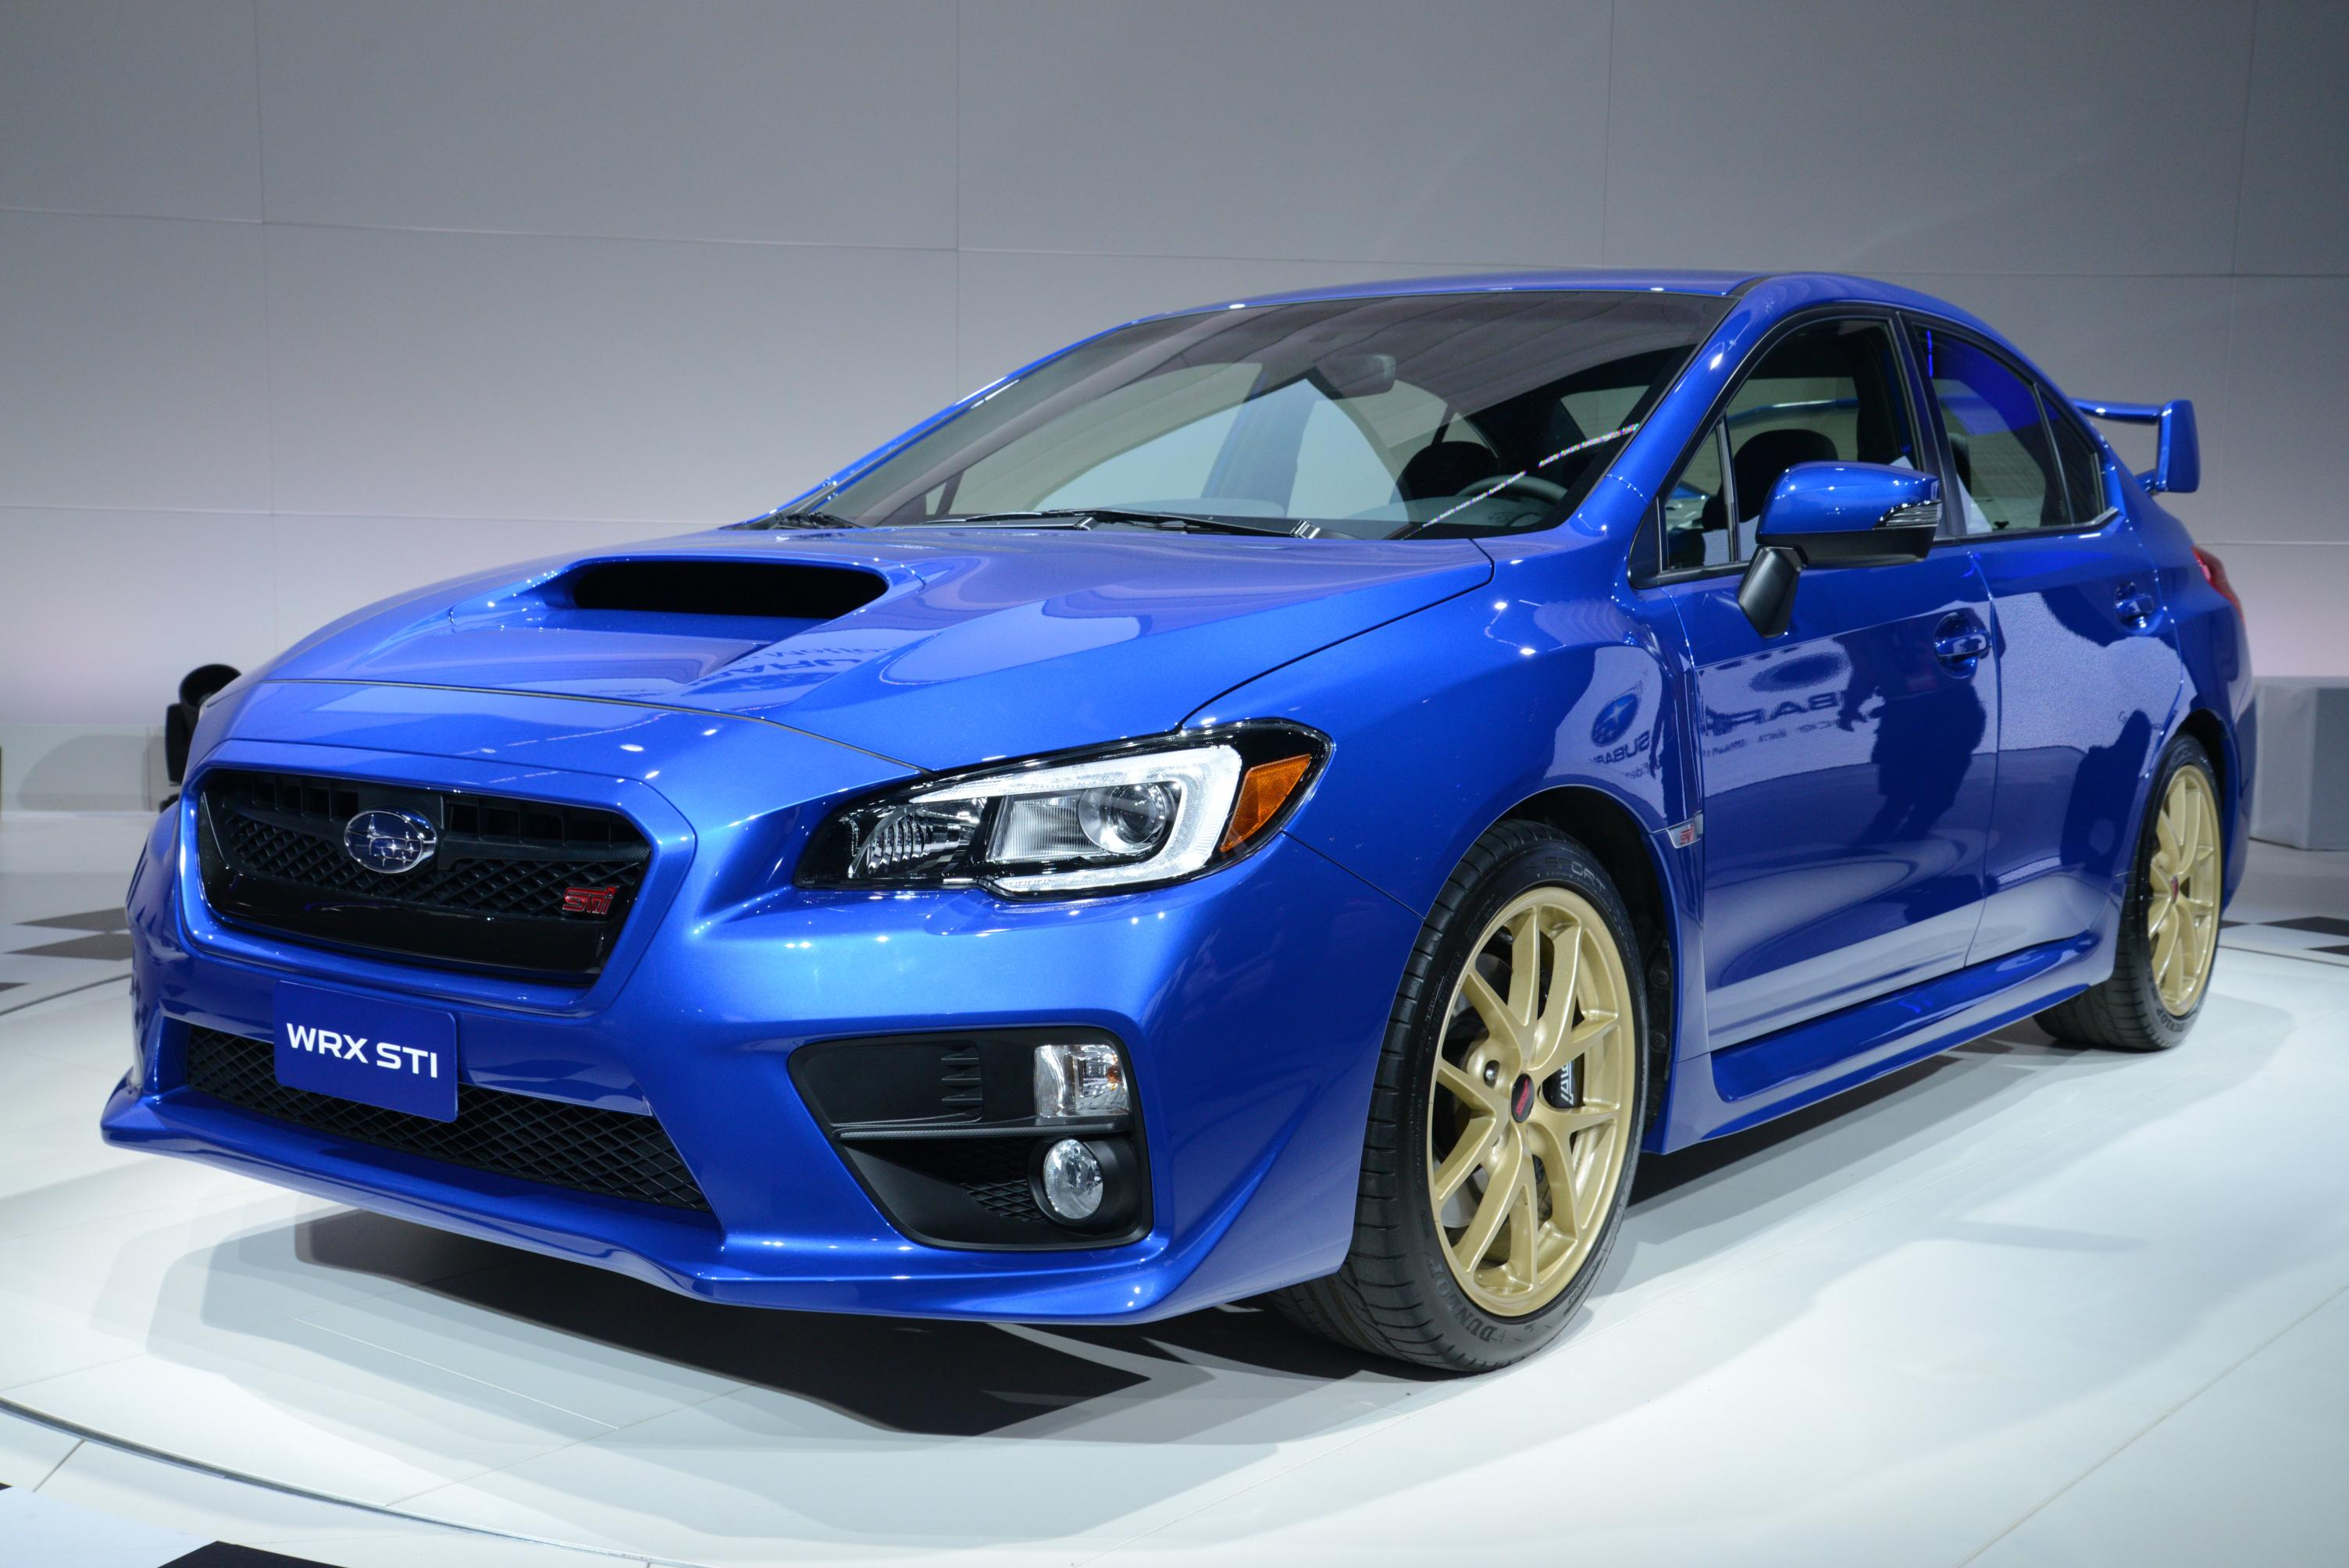 subaru unveils new hotter wrx sti. Black Bedroom Furniture Sets. Home Design Ideas